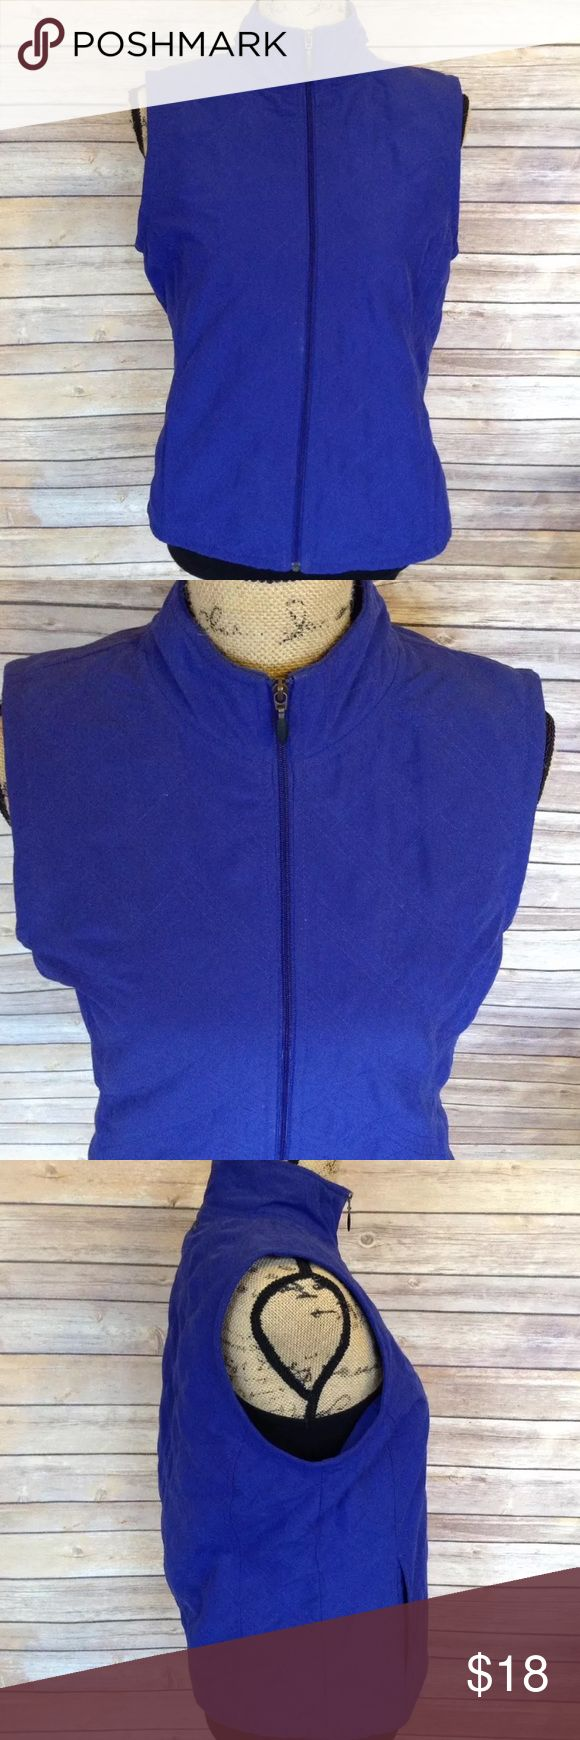 "Columbia Sportswear medium blue zip up vest Pre-owned Columbia Sportswear Company women's size medium blue zip up vest. Very good used condition. No rips holes or stains. Two front pockets. 100% polyester.   Measurements:  Armpit to armpit- 18.5""  Length- 22.5""   I ship fast! Pay before 4:30pm Monday thru Friday and I will ship the same day!  Thank you for looking!  Check out my other items! Columbia Jackets & Coats Vests"